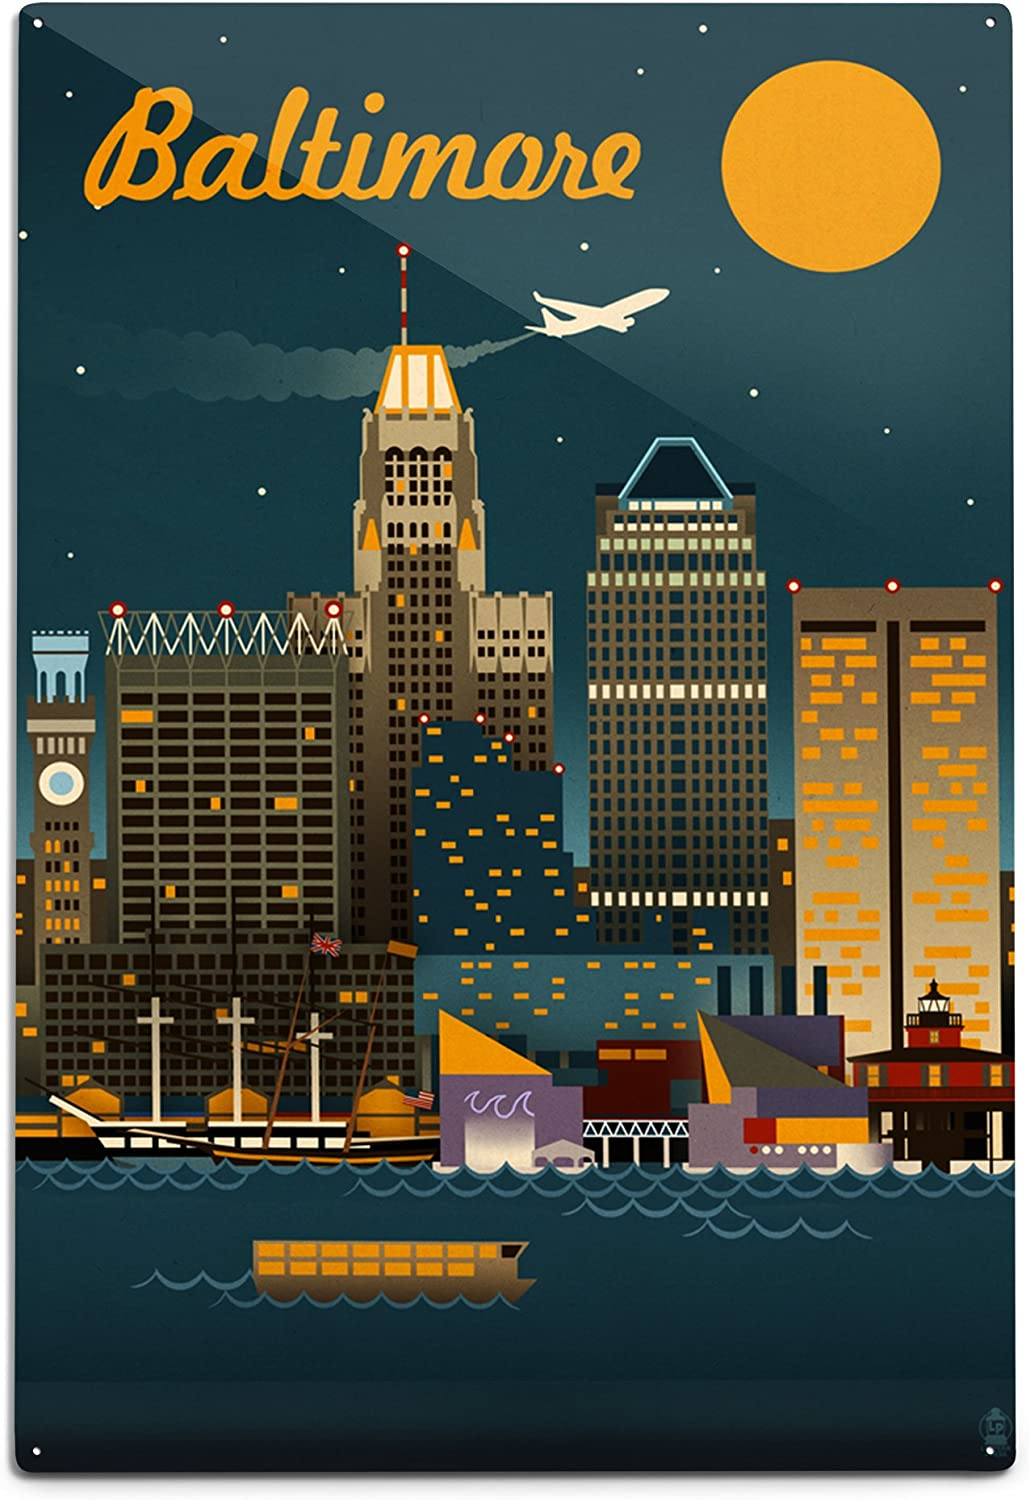 Wall Decal Sticker Baltimore Skyline 21 Tall 54 Wide in White or Black